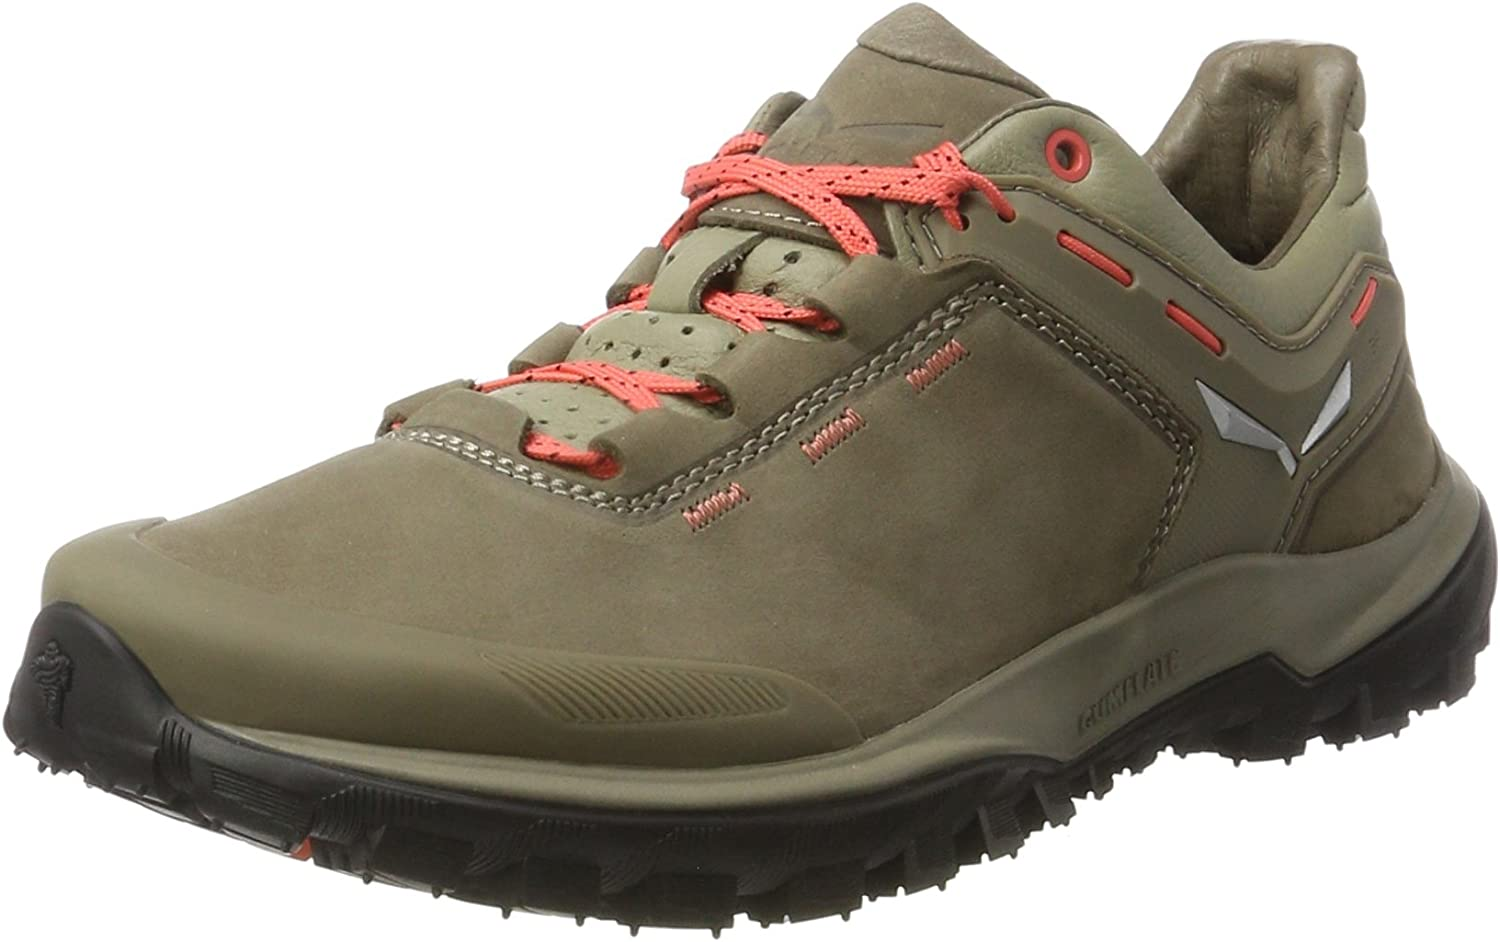 Salewa Womens Wander Hiker L-w Climbing shoes